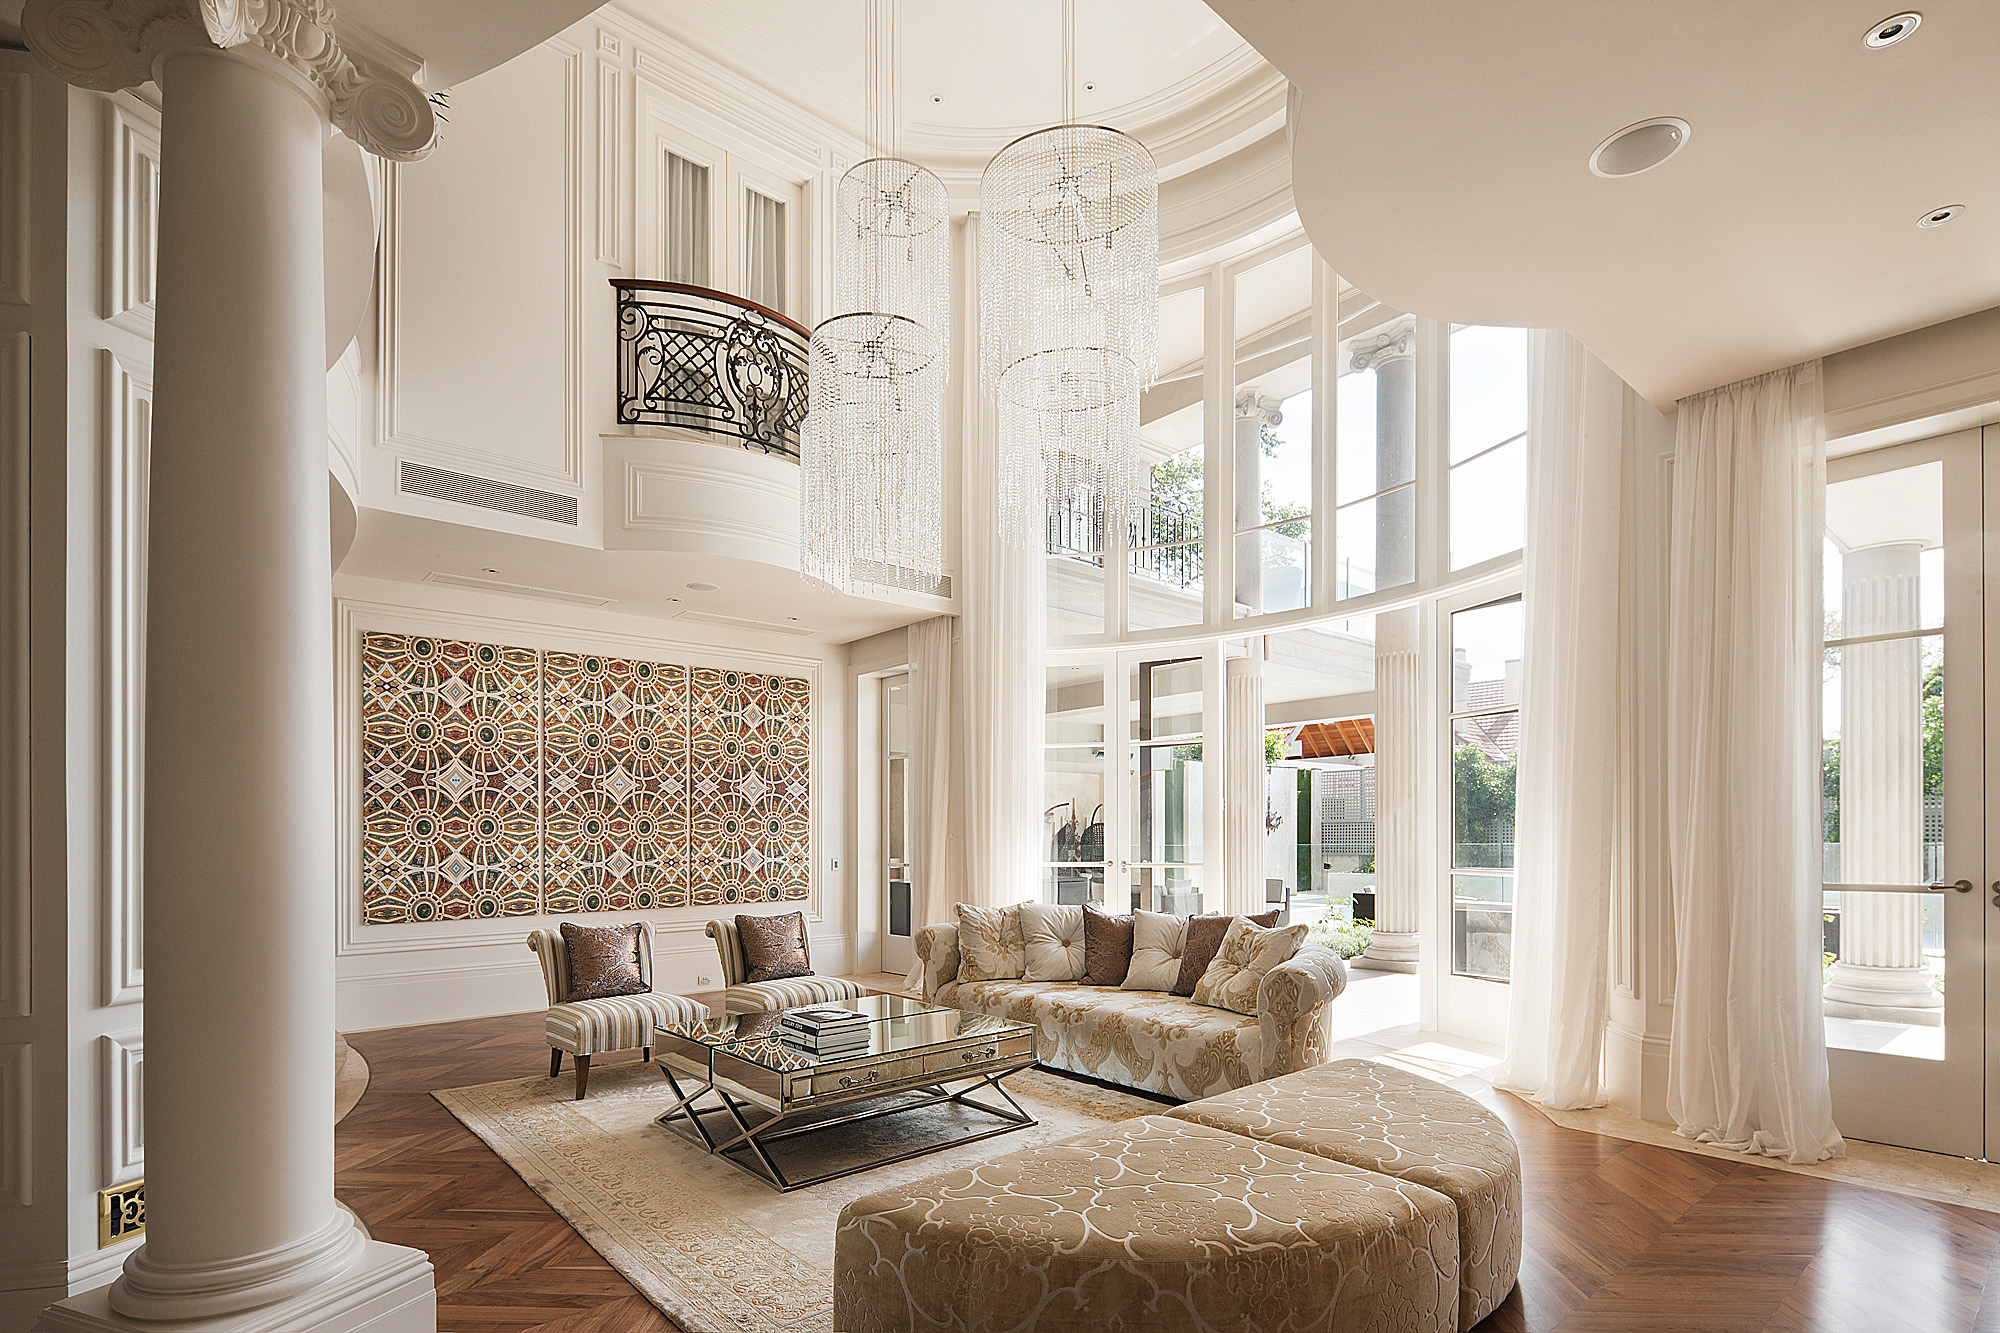 Brighton Residence - Full Architectural, Interior Design and Construction Management